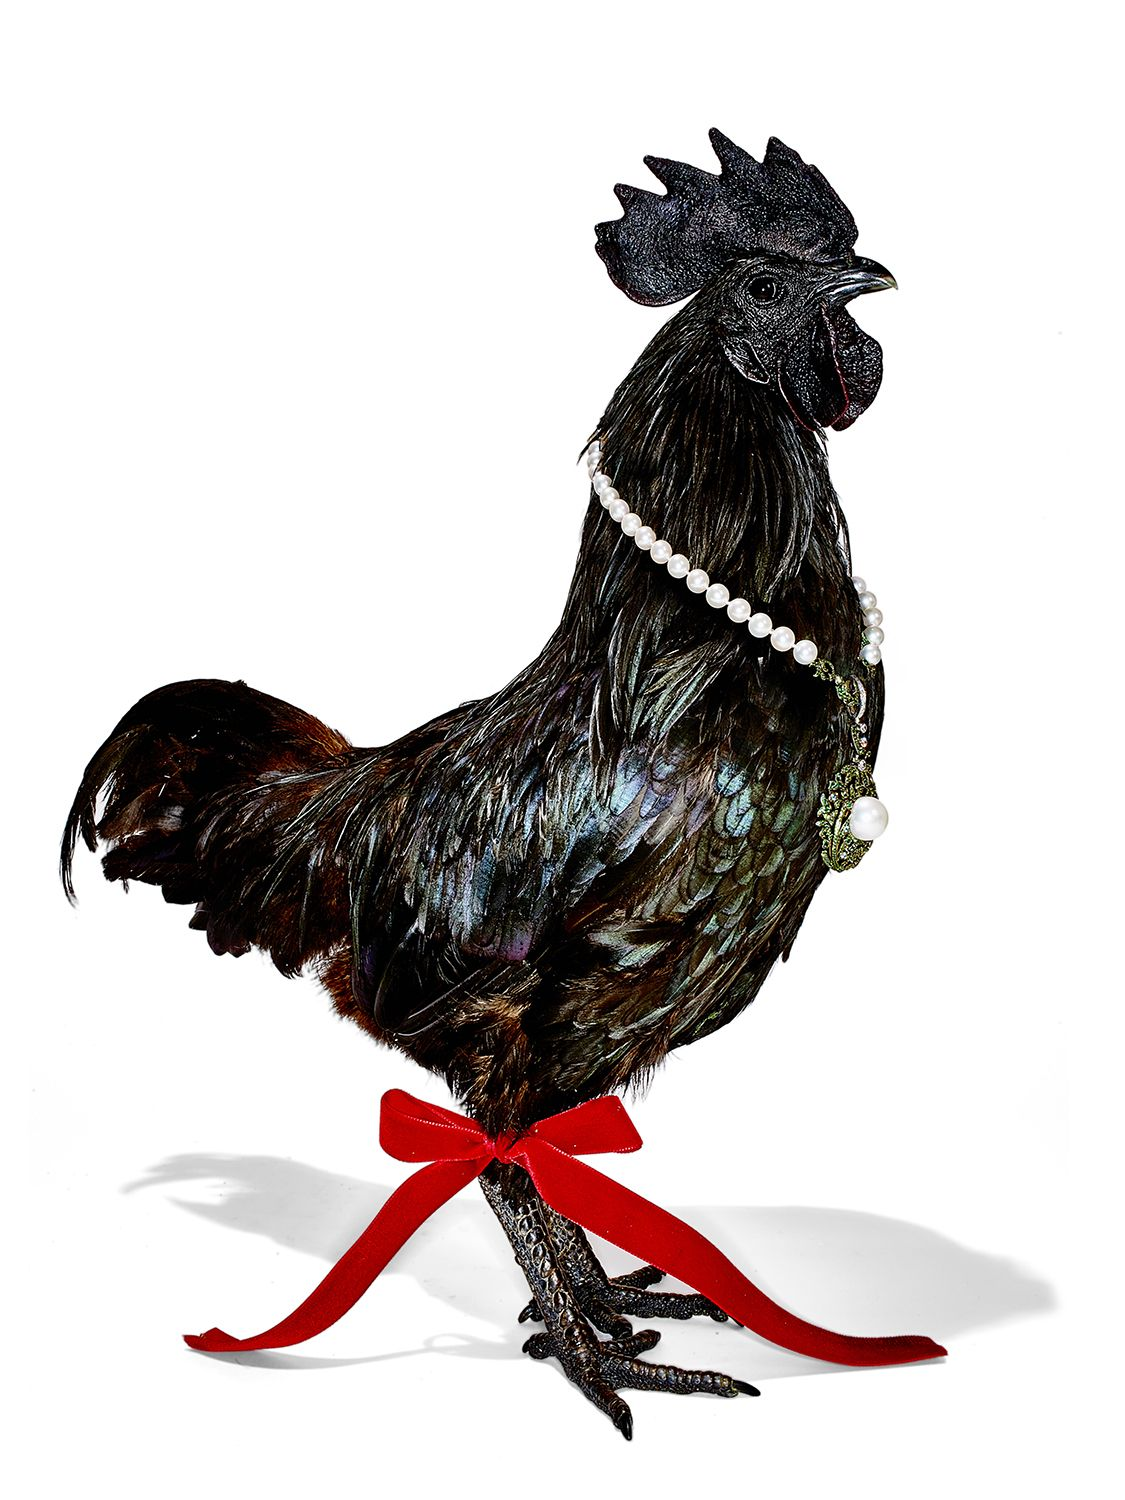 ayam cemani chicken wearing chanel for new york magazine